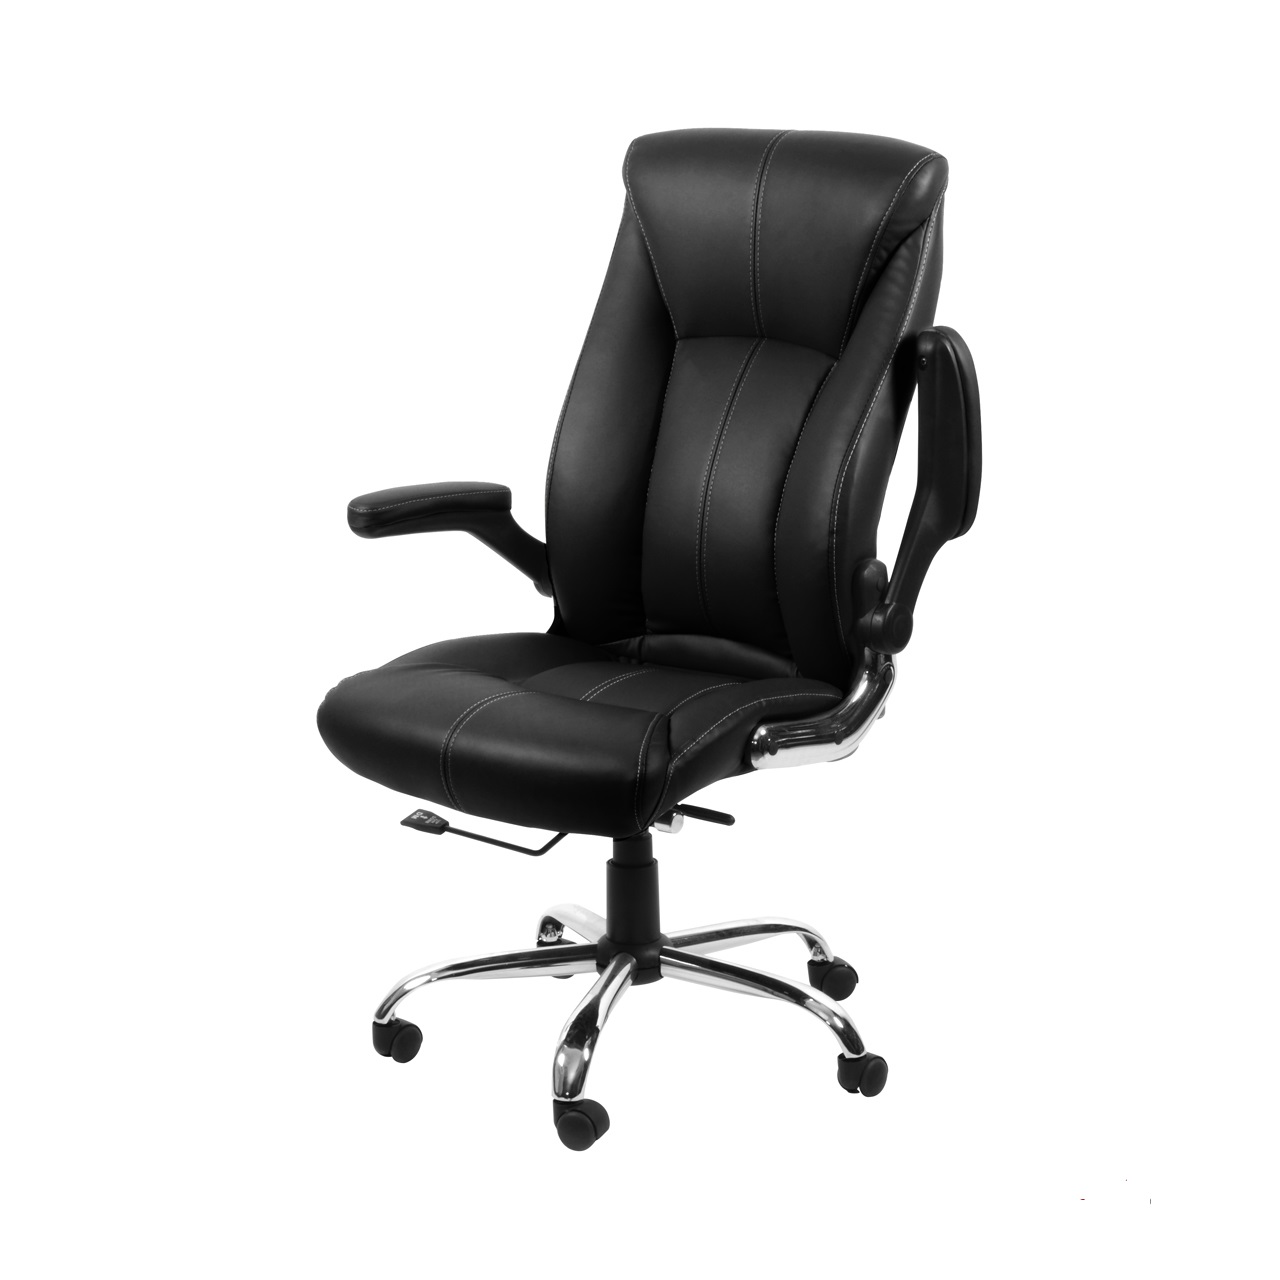 Salon Chairs And Furniture Modern Office Furniture Chairs